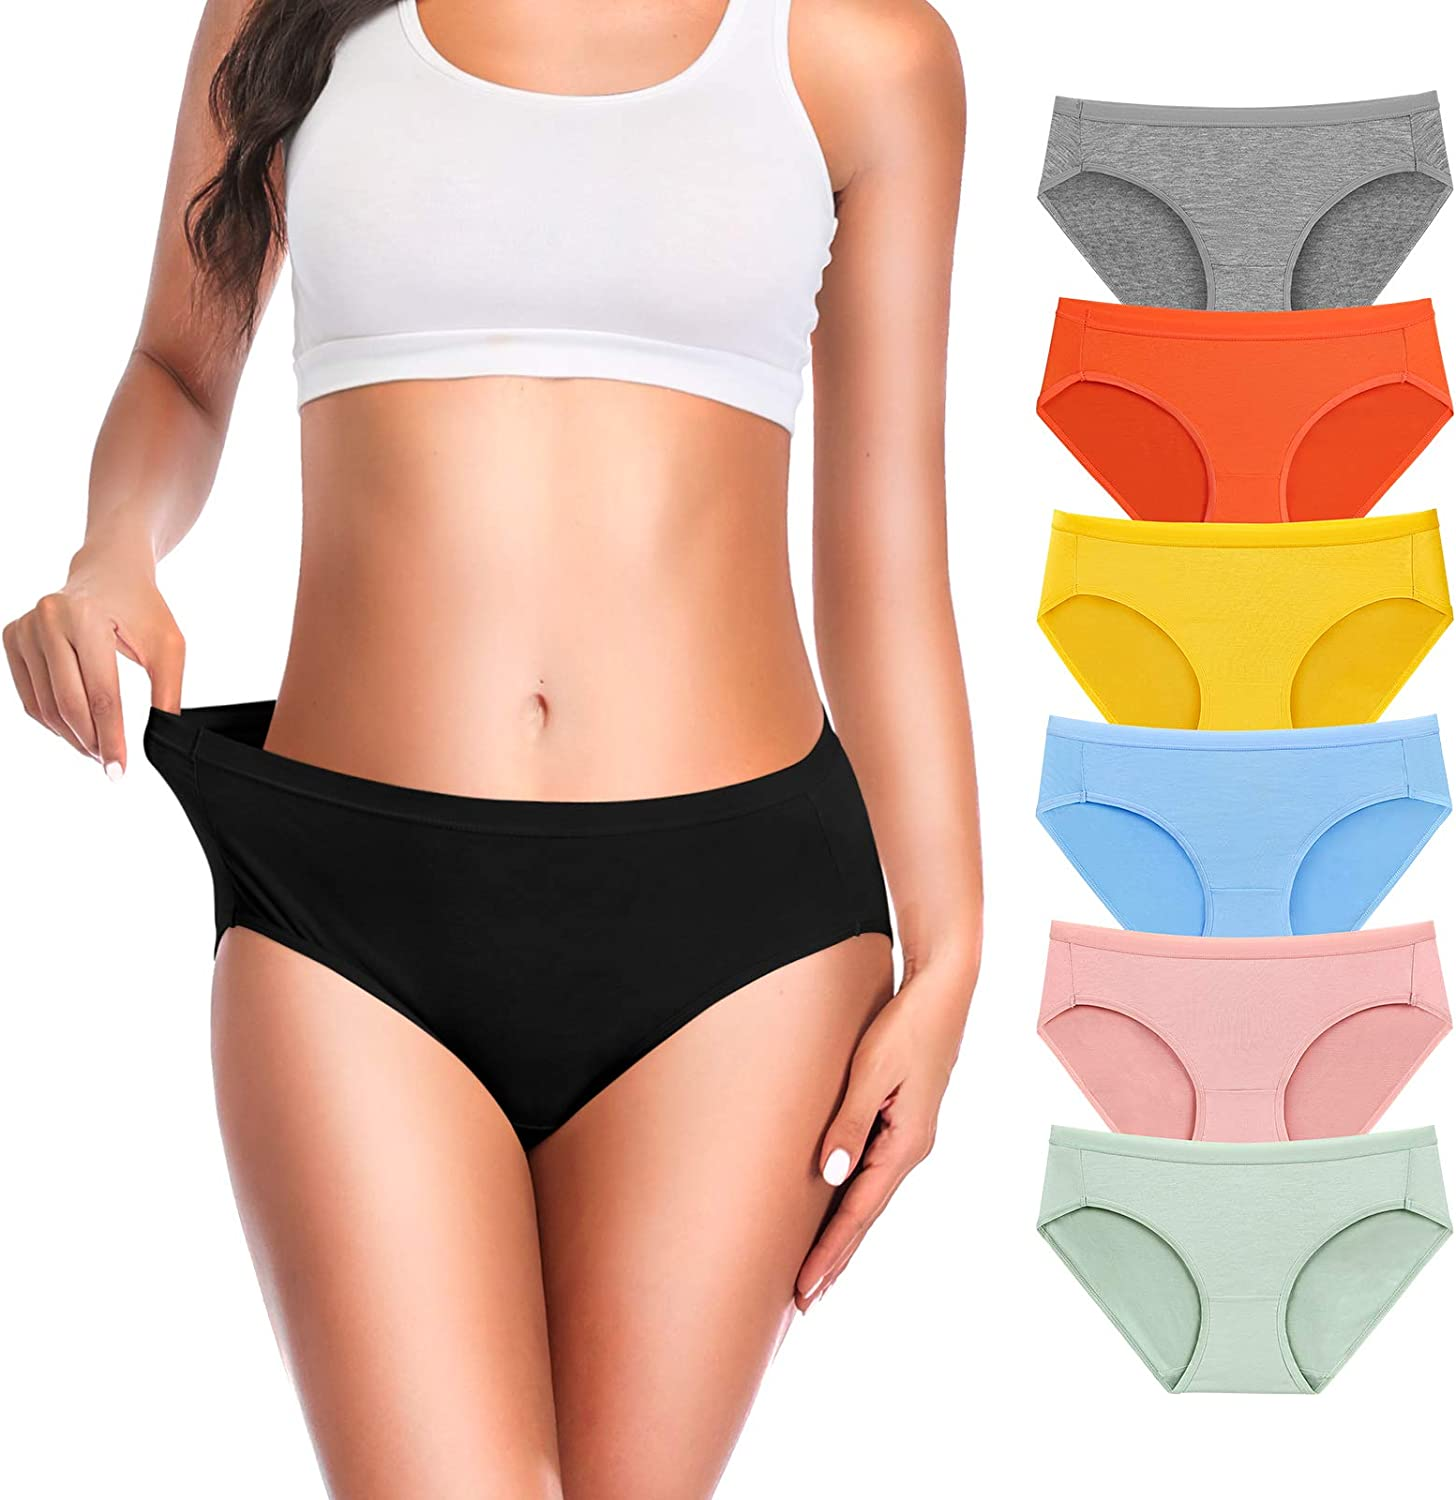 OLIKEME Underwear for Women Mid Waisted Soft Full Coverage Breathable Cotton Ladies Panties Briefs